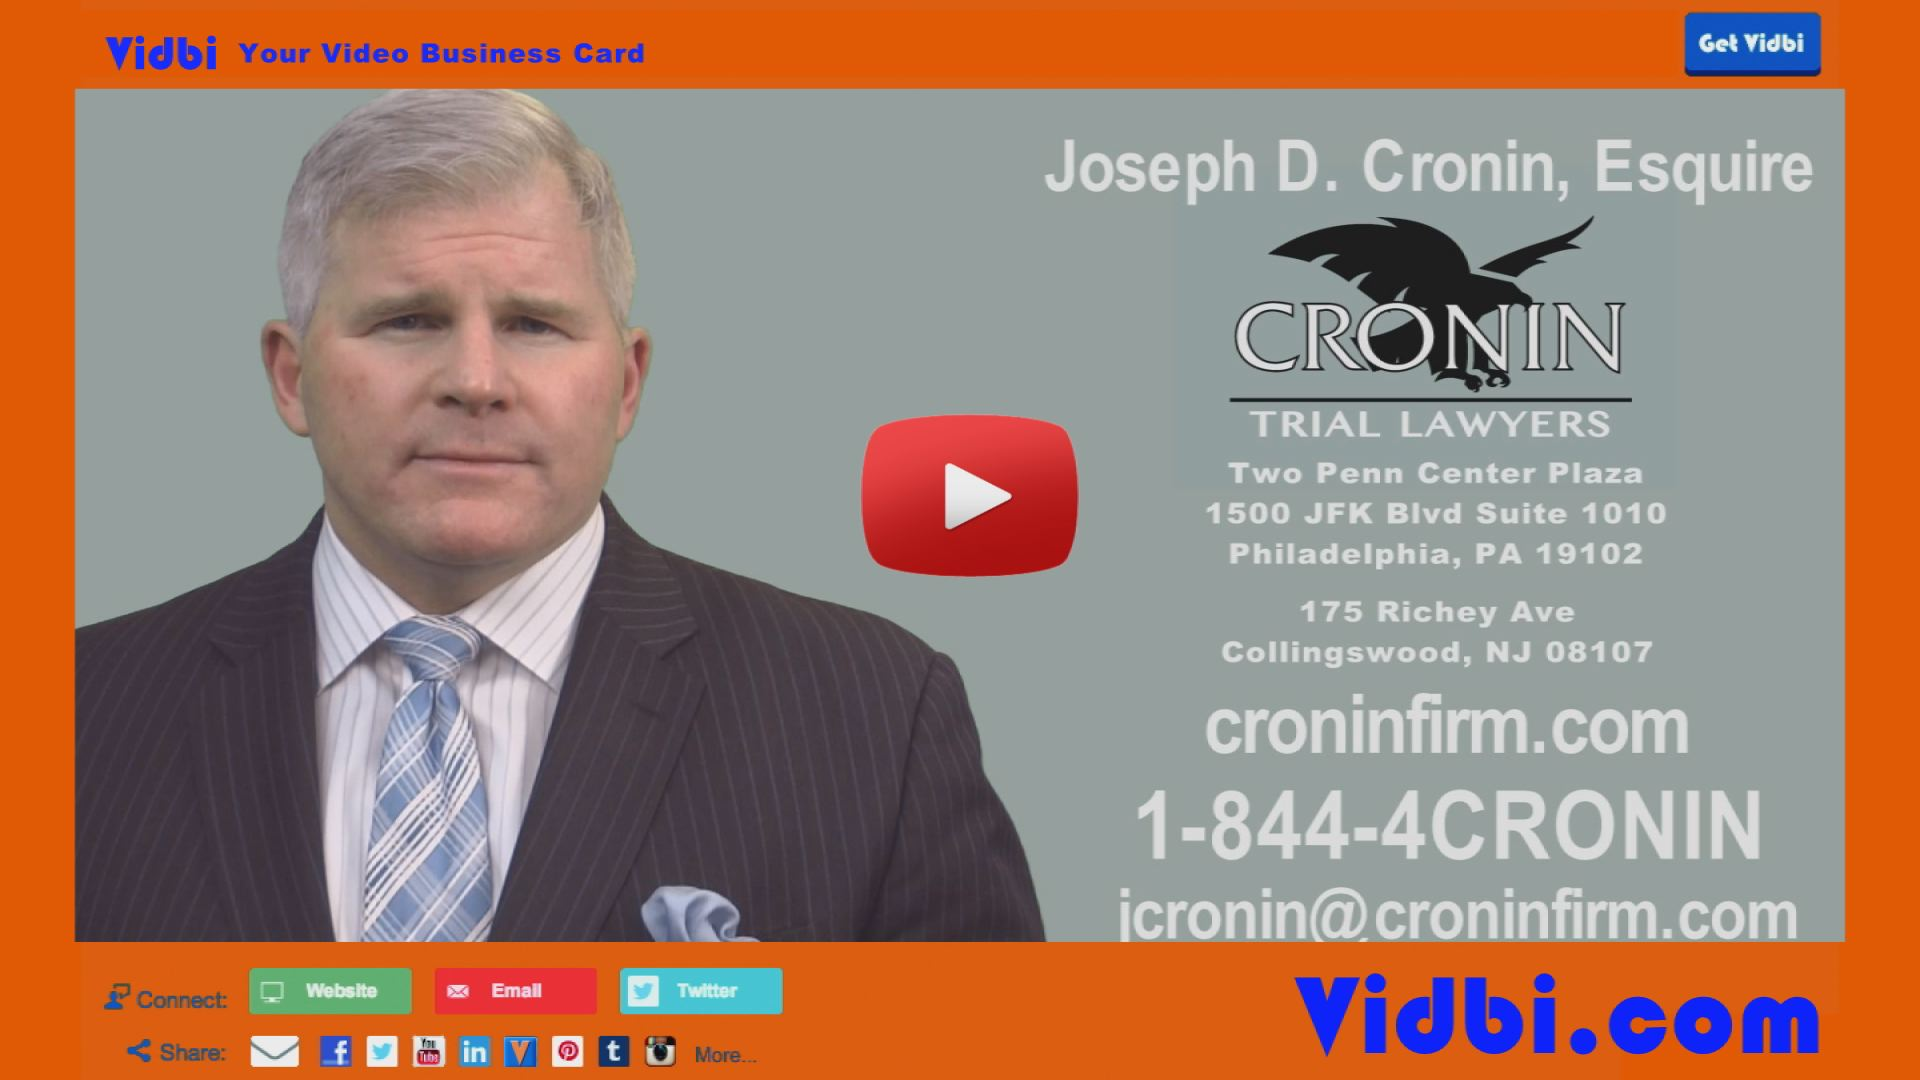 Joe Cronin Trial Lawyers Vidbi